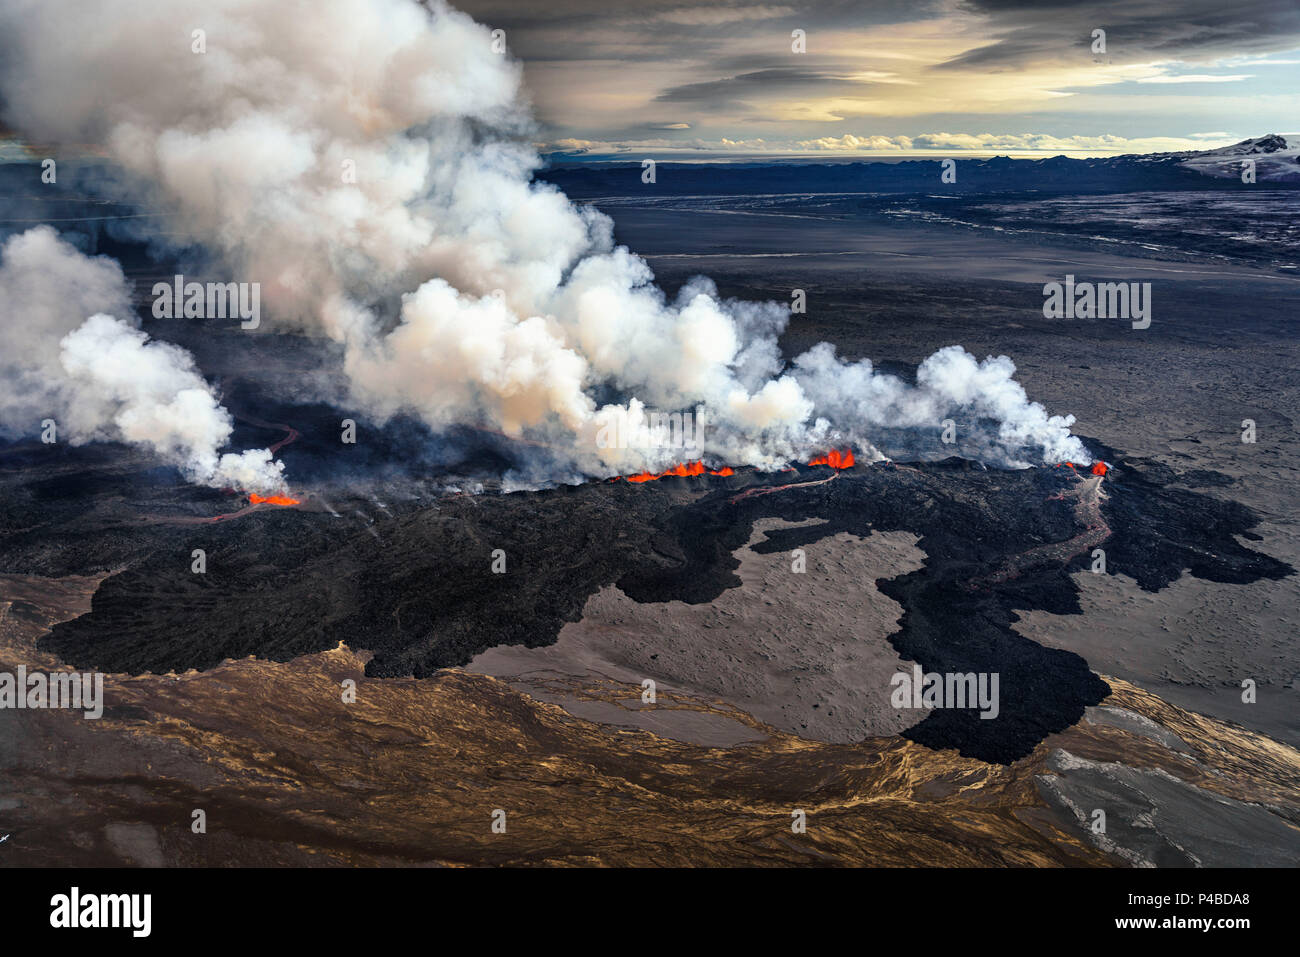 Lava and plumes from the Holuhraun Fissure by the Bardarbunga Volcano, Iceland. Sept. 1, 2014 Aerial view of the eruption at the Holuhraun Fissure by the Bardarbunga Volcano, Iceland. Looking South East with the Kverkfjoll mountain range in the distance. Dust storms result from the Hurricane Cristobal in the South Atlantic. On August 29, 2014, a fissure eruption started in Holuhraun at the northern end of a magma intrusion that had moved progressively north, from the Bardarbunga volcano. Bardarbunga is a stratovolcano located under Vatnajokull, Icelands most extensive glacier. - Stock Image